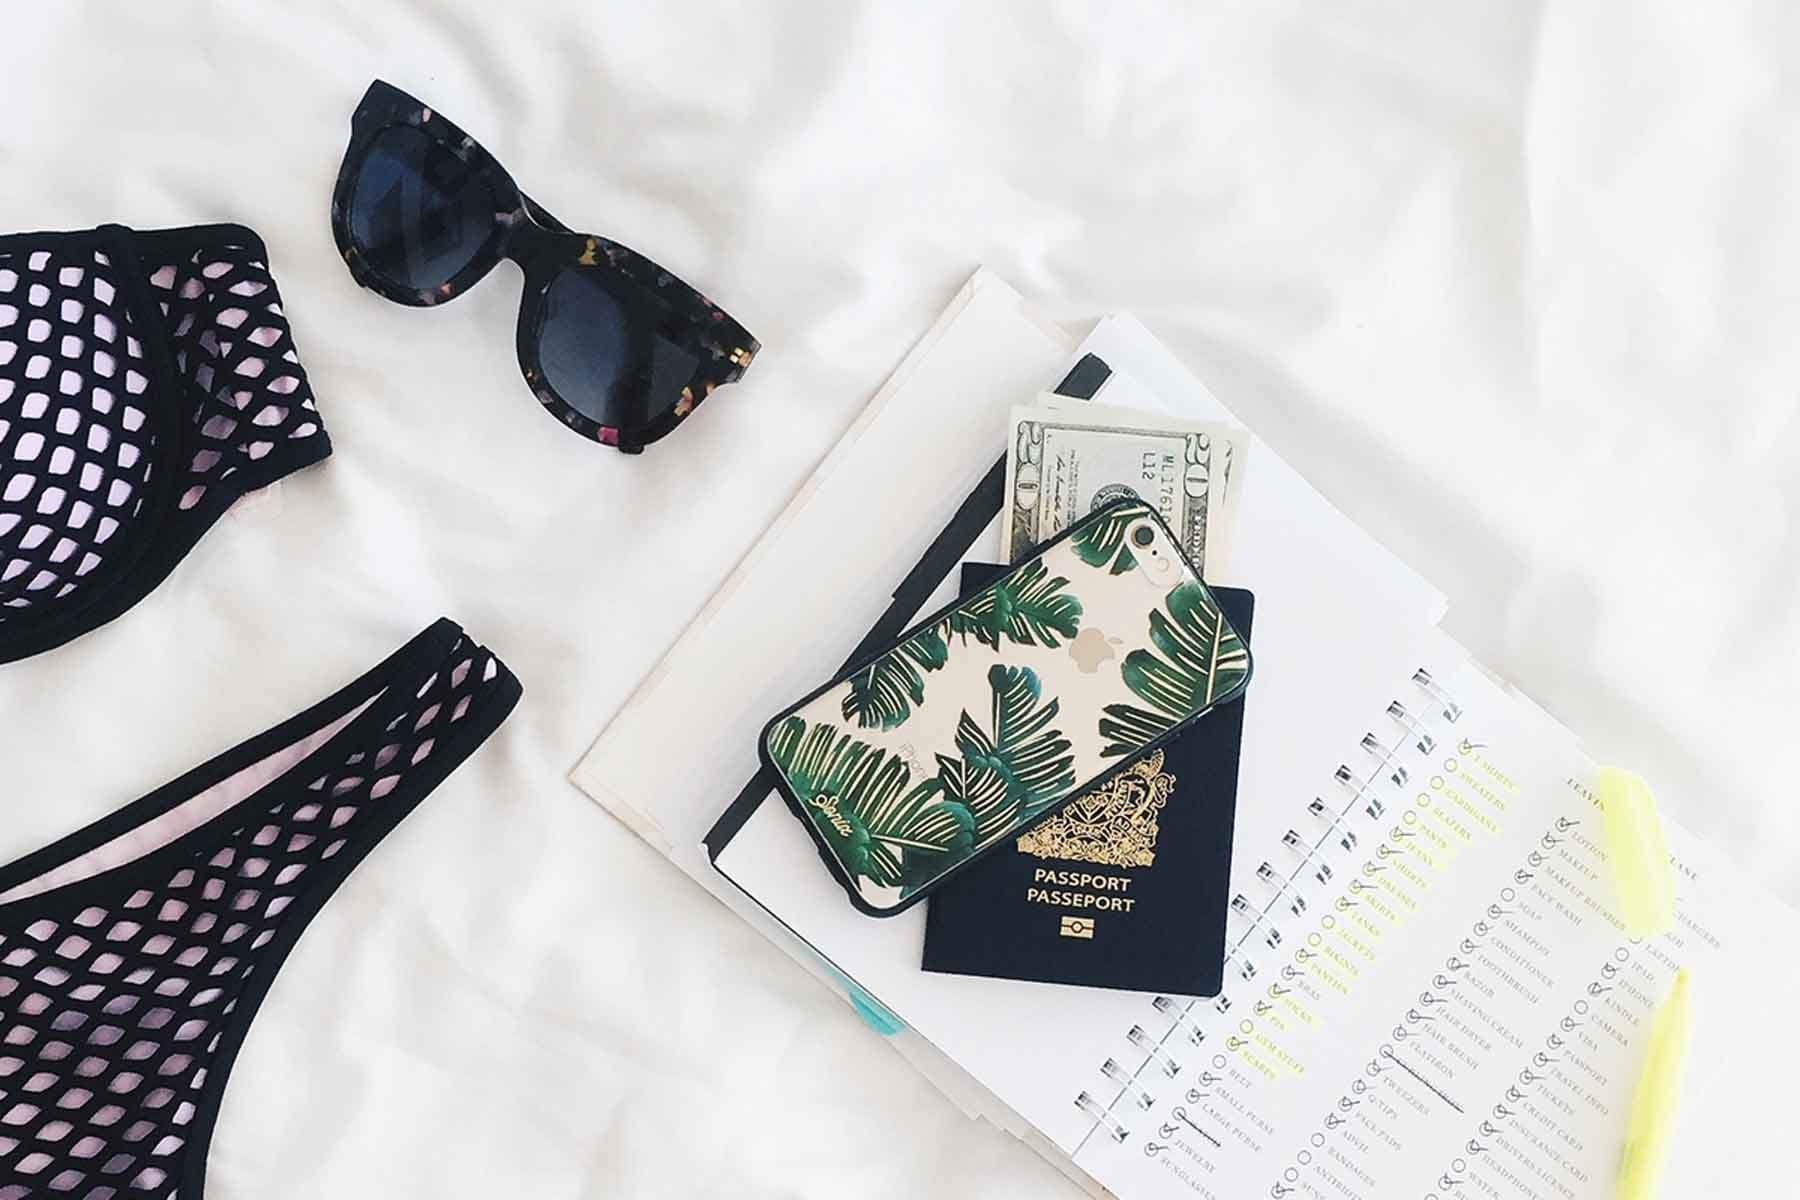 Photo of swimsuit, sunglasses, passport, cash, phone and planner